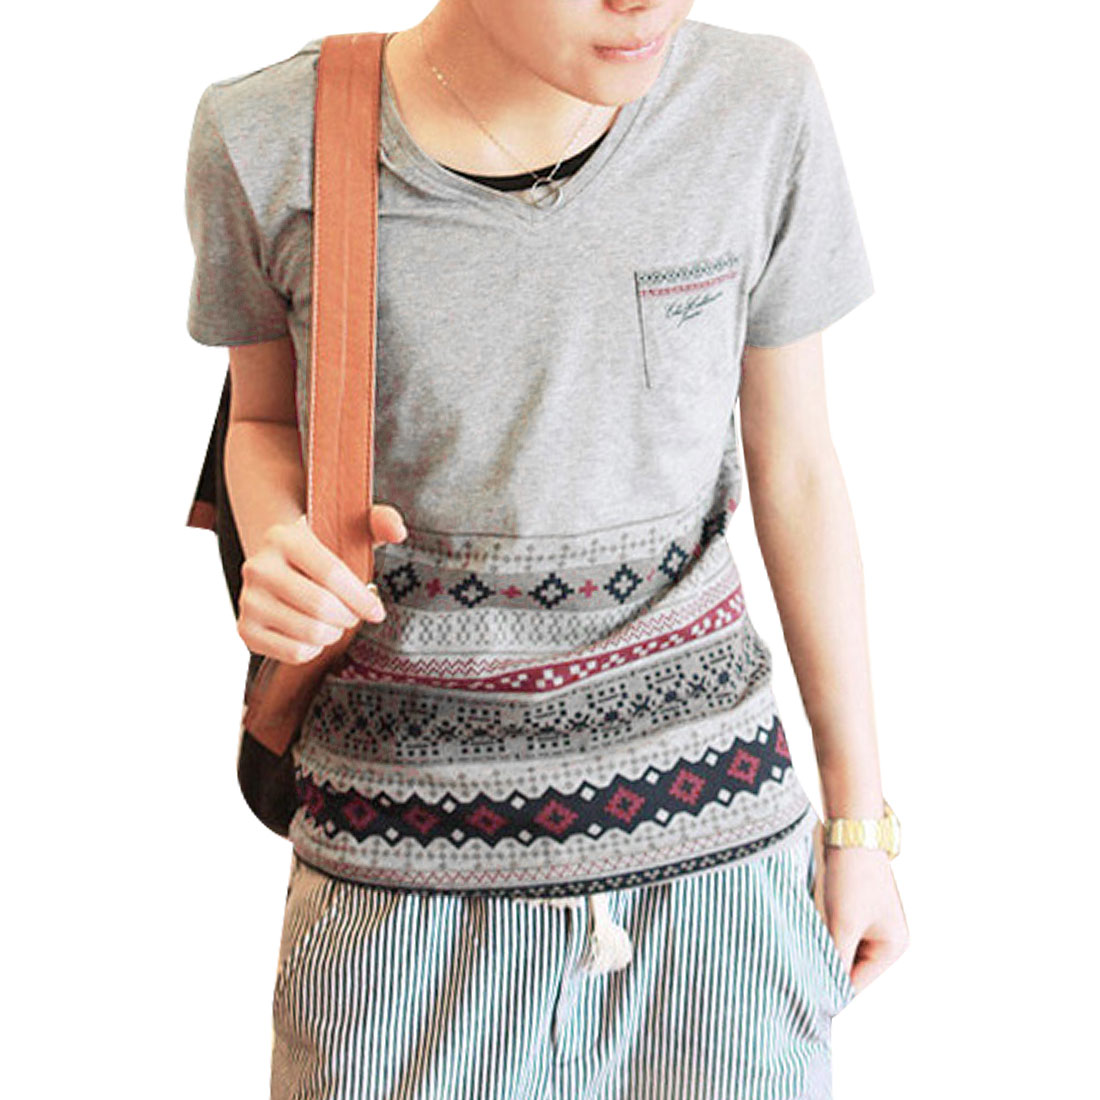 Men Short Sleeves Jacquard Embellished Summer Casual T-Shirt Top Gray S